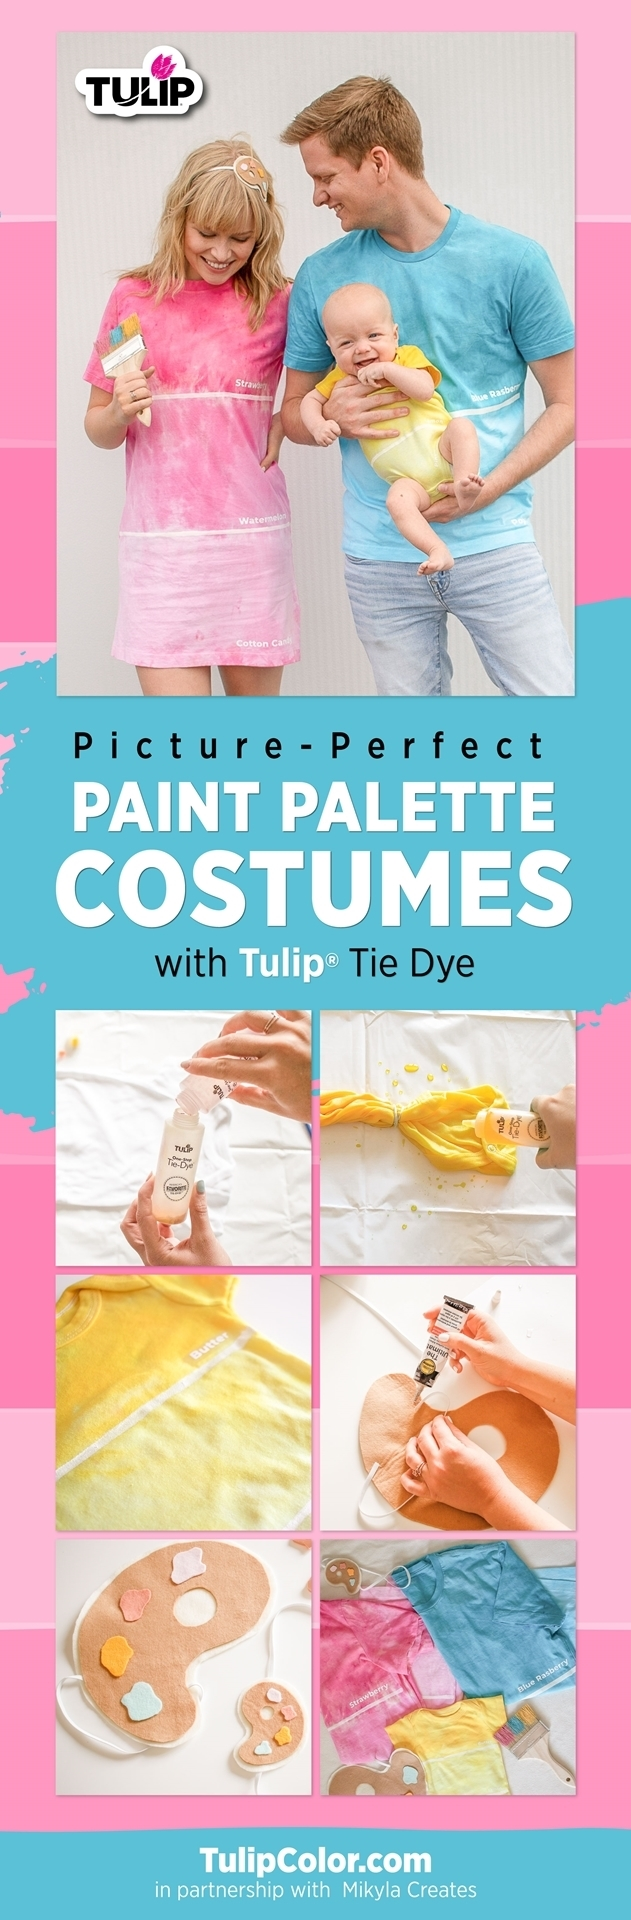 Cute Colorful Couples Costumes for Halloween with Tulip Tie Dye